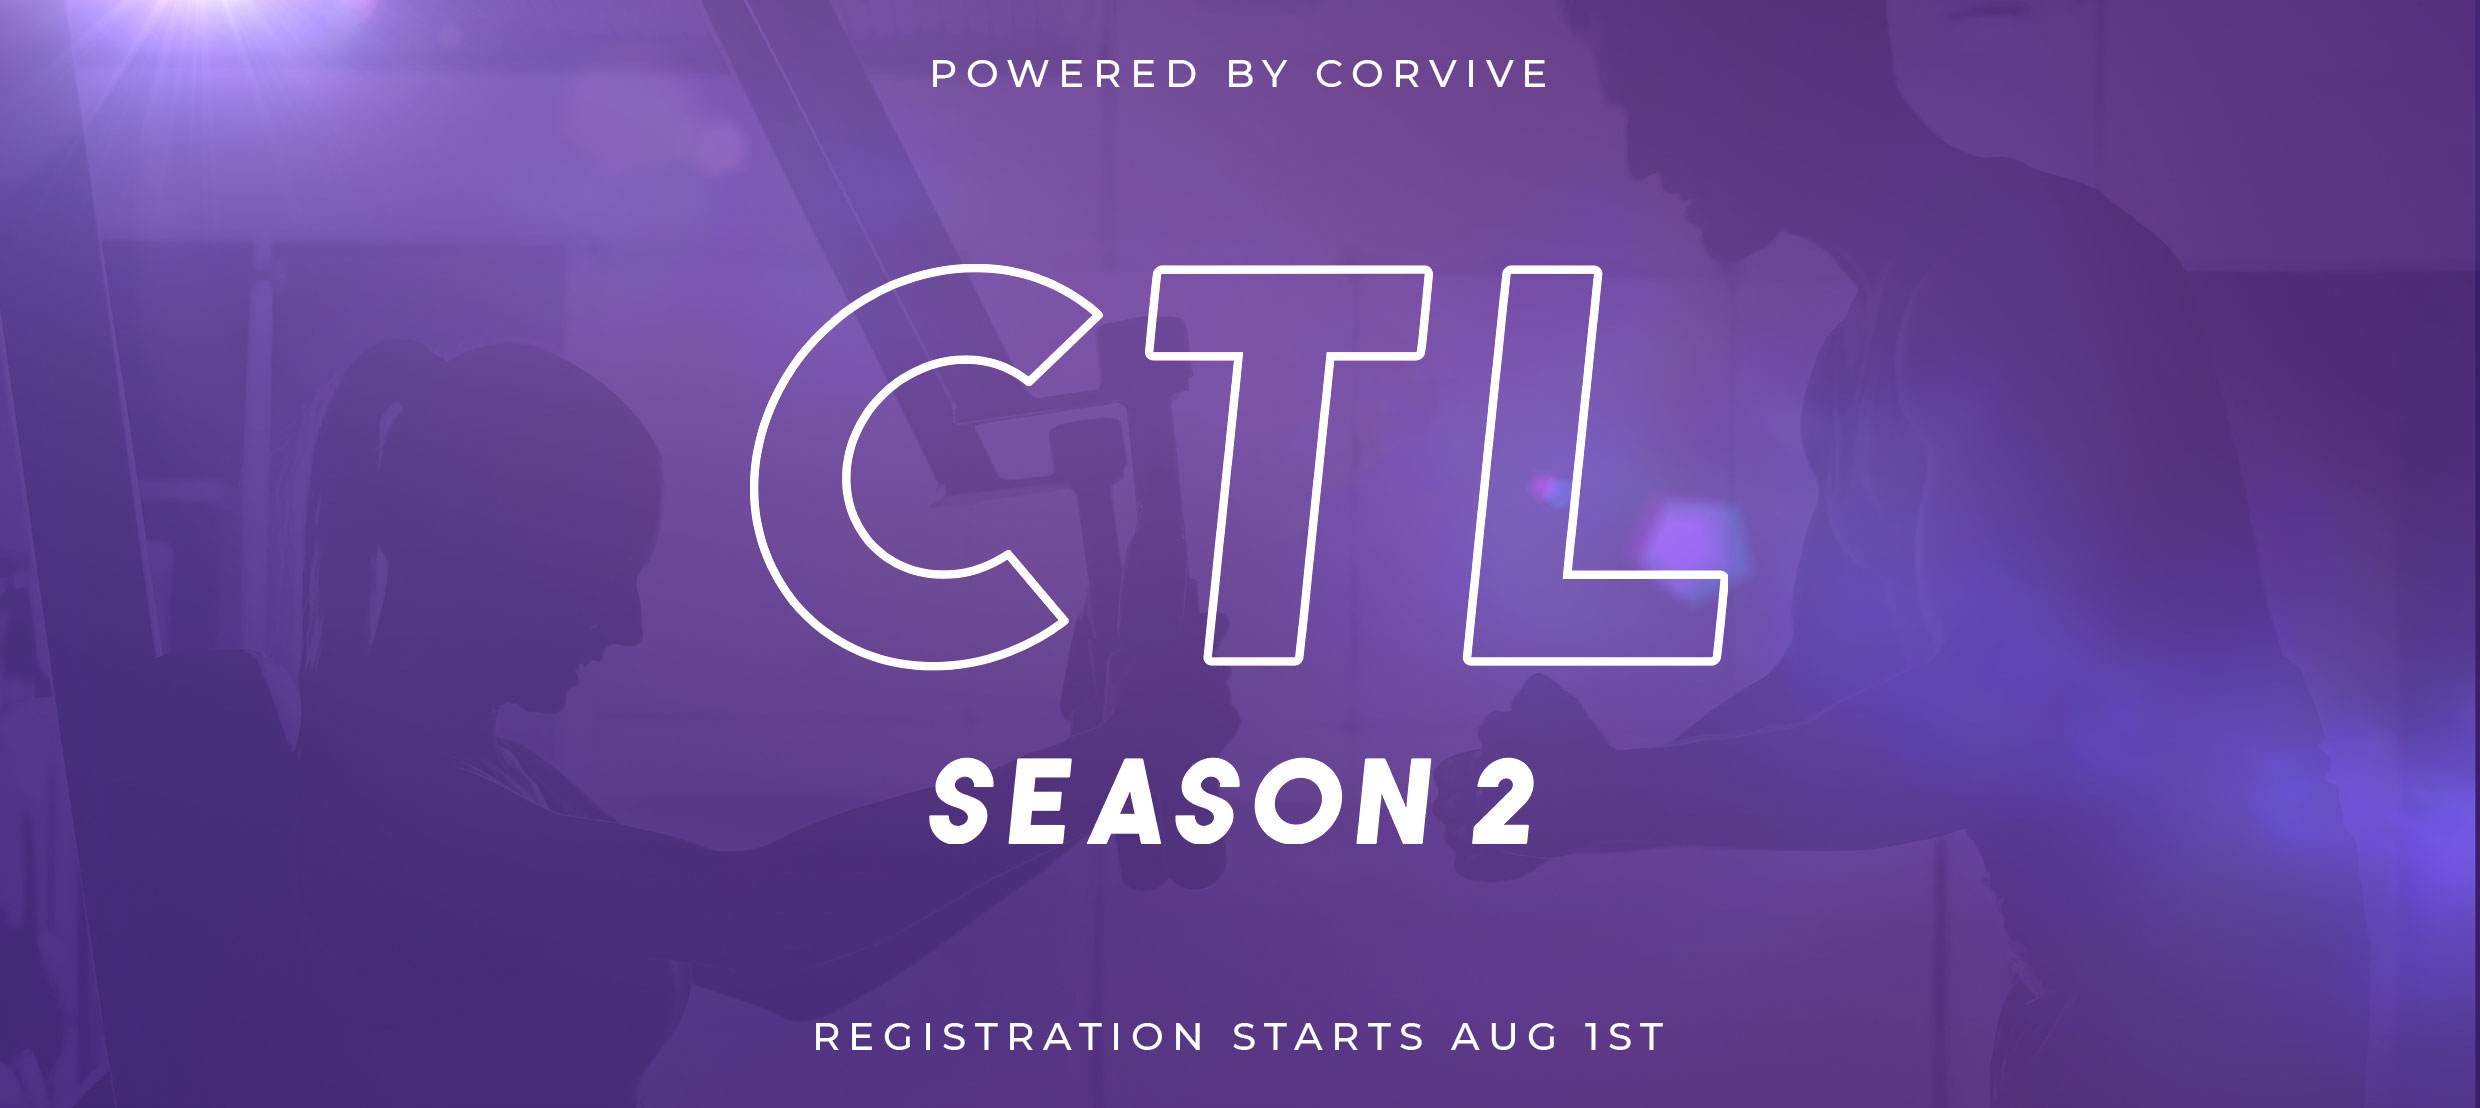 Corvive Transformation League CTL Season 2